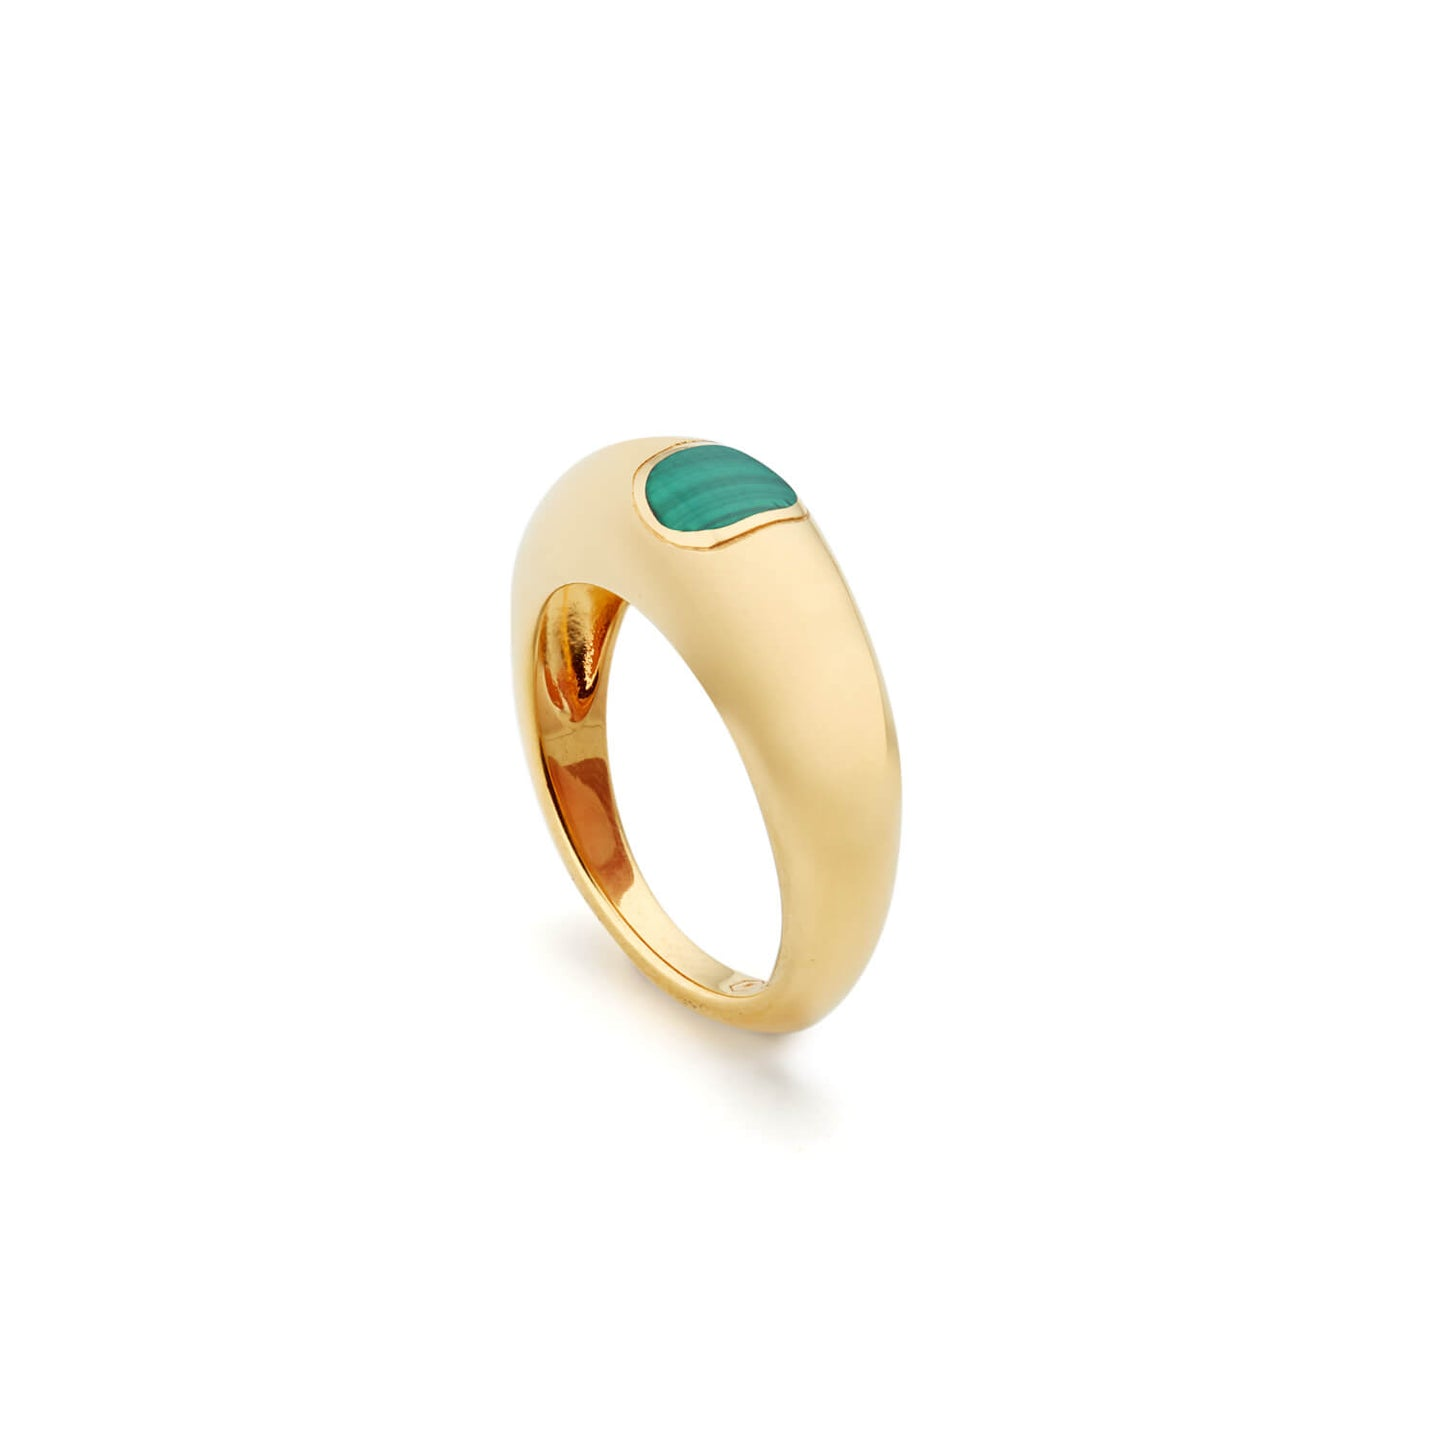 Gold Piquant Ring with Malachite